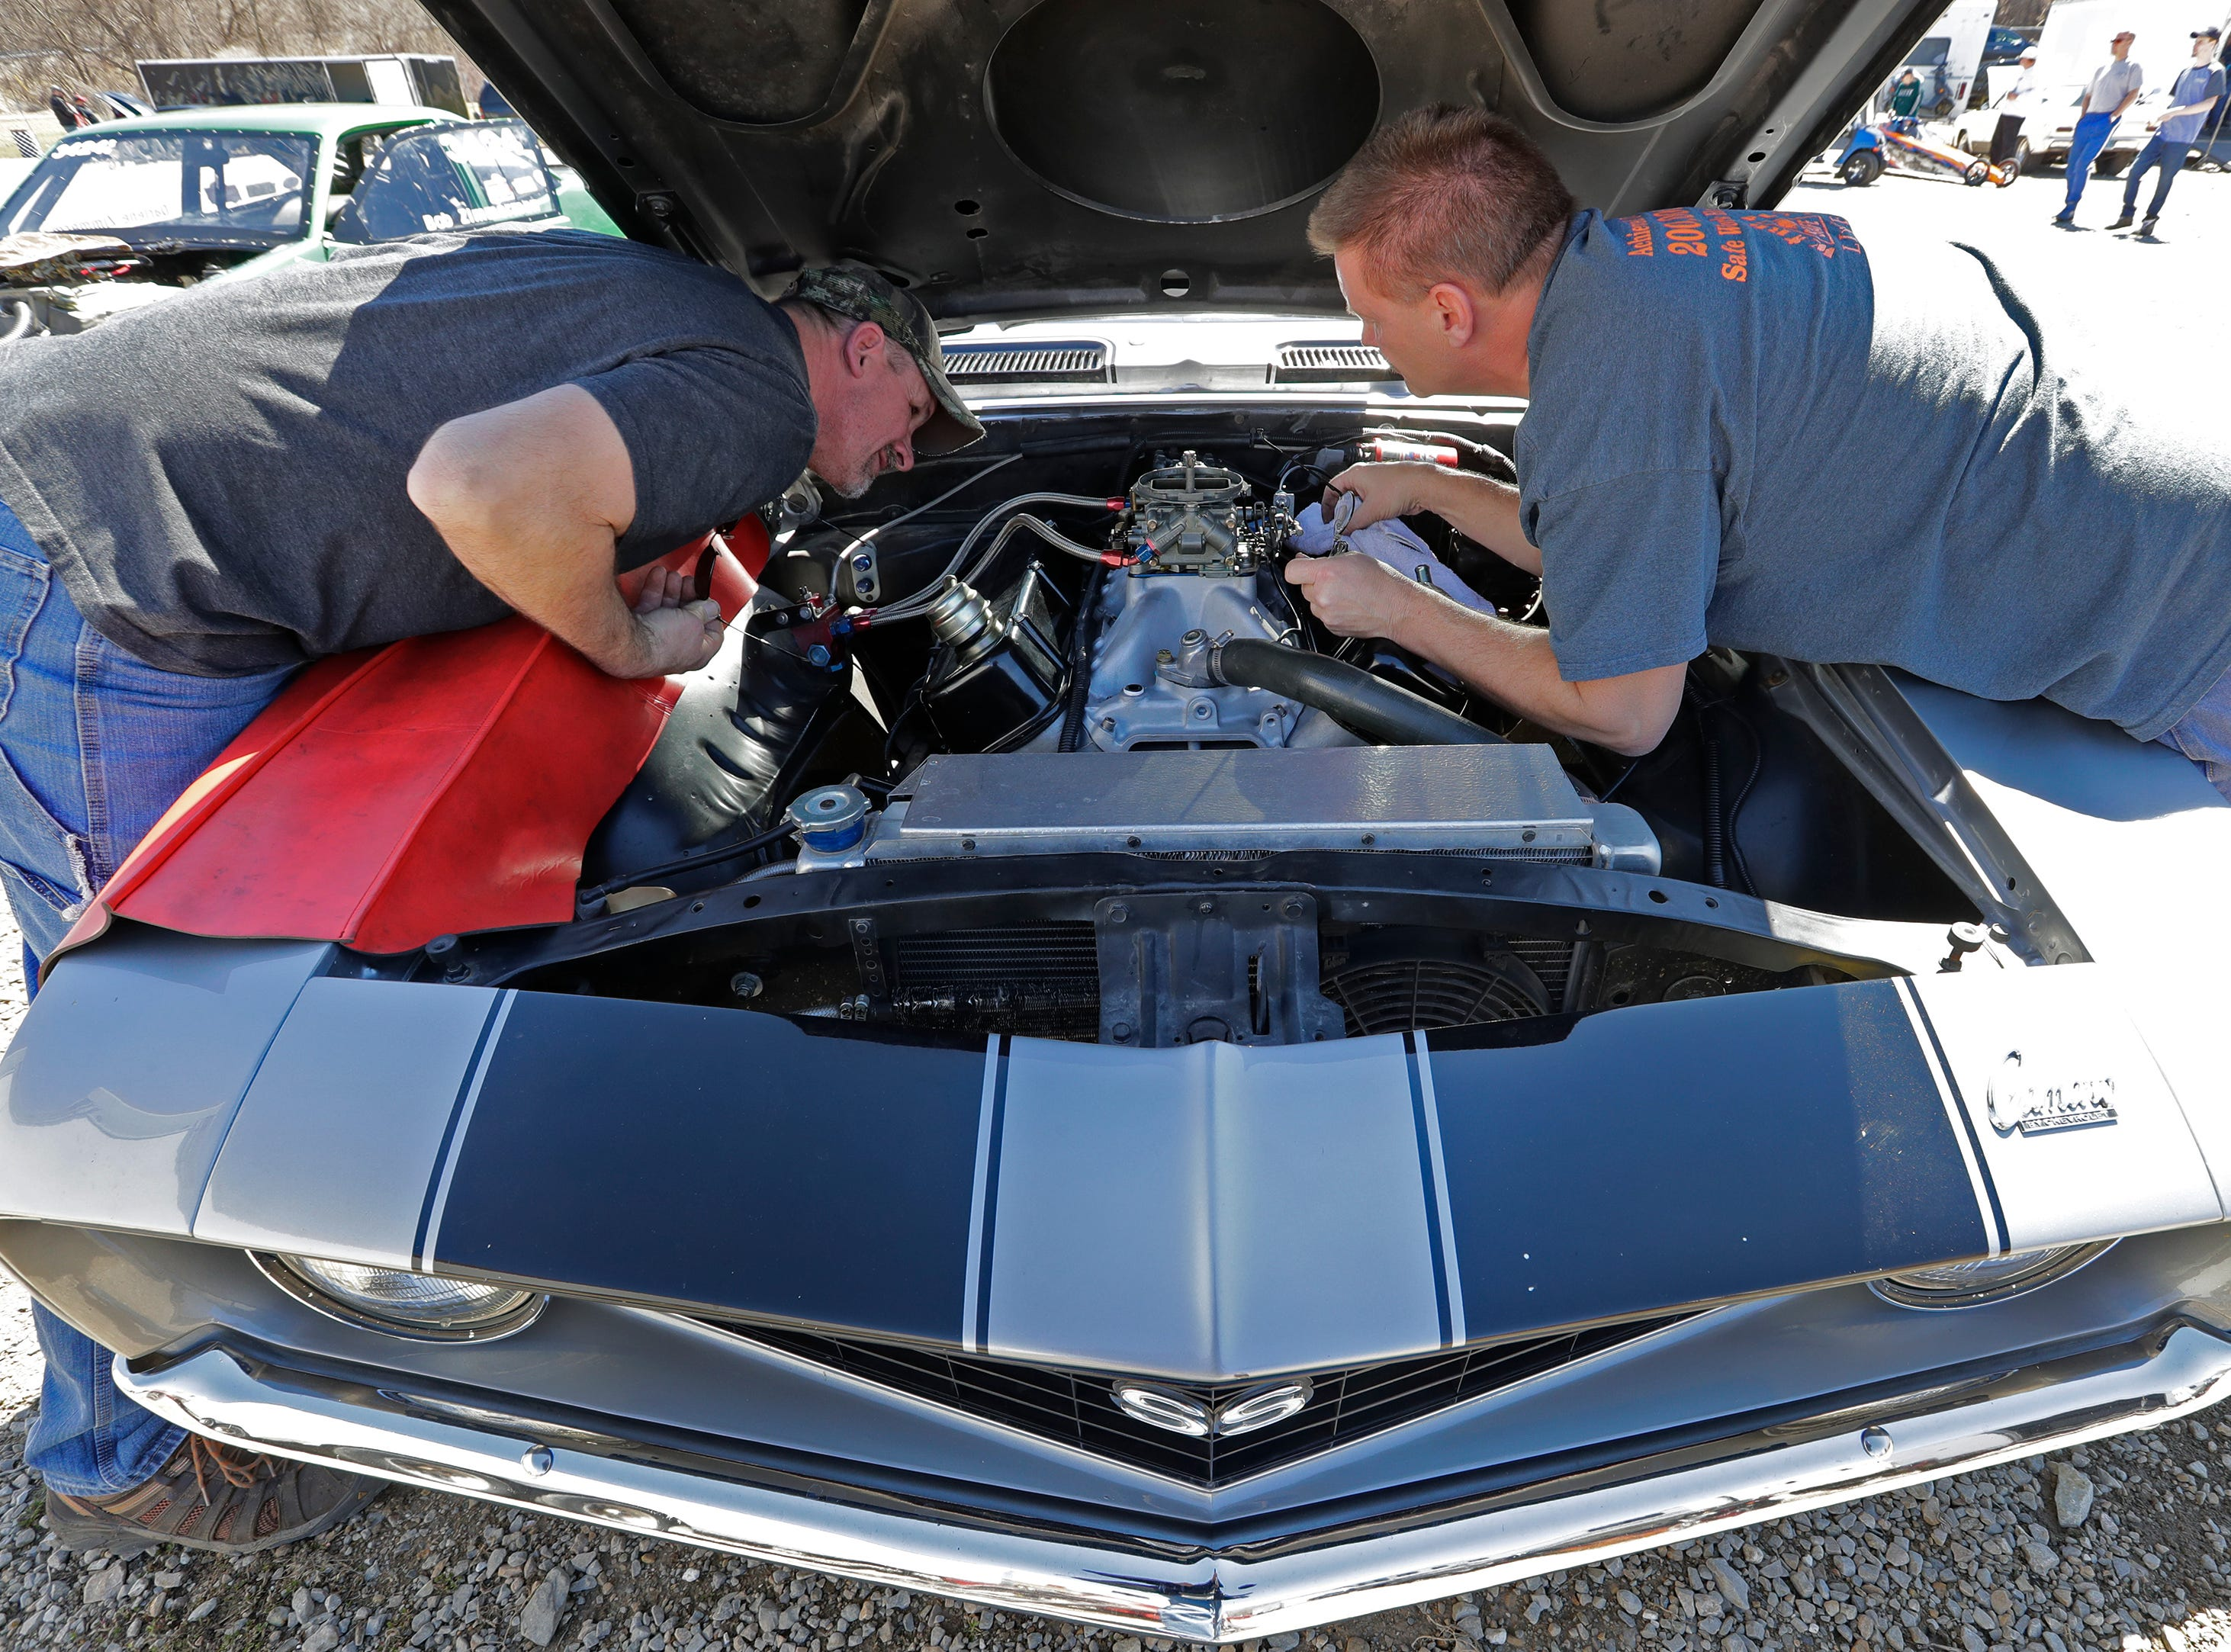 Brothers Tom Schulz, left, of Oshkosh and his brother John Schulz replace a carburetor on Tom's 1969 Camaro during the Wisconsin International Raceway Strip Test & Tune event Saturday, April 19, 2019, in Kaukauna, Wis. Dan Powers/USA TODAY NETWORK-Wisconsin